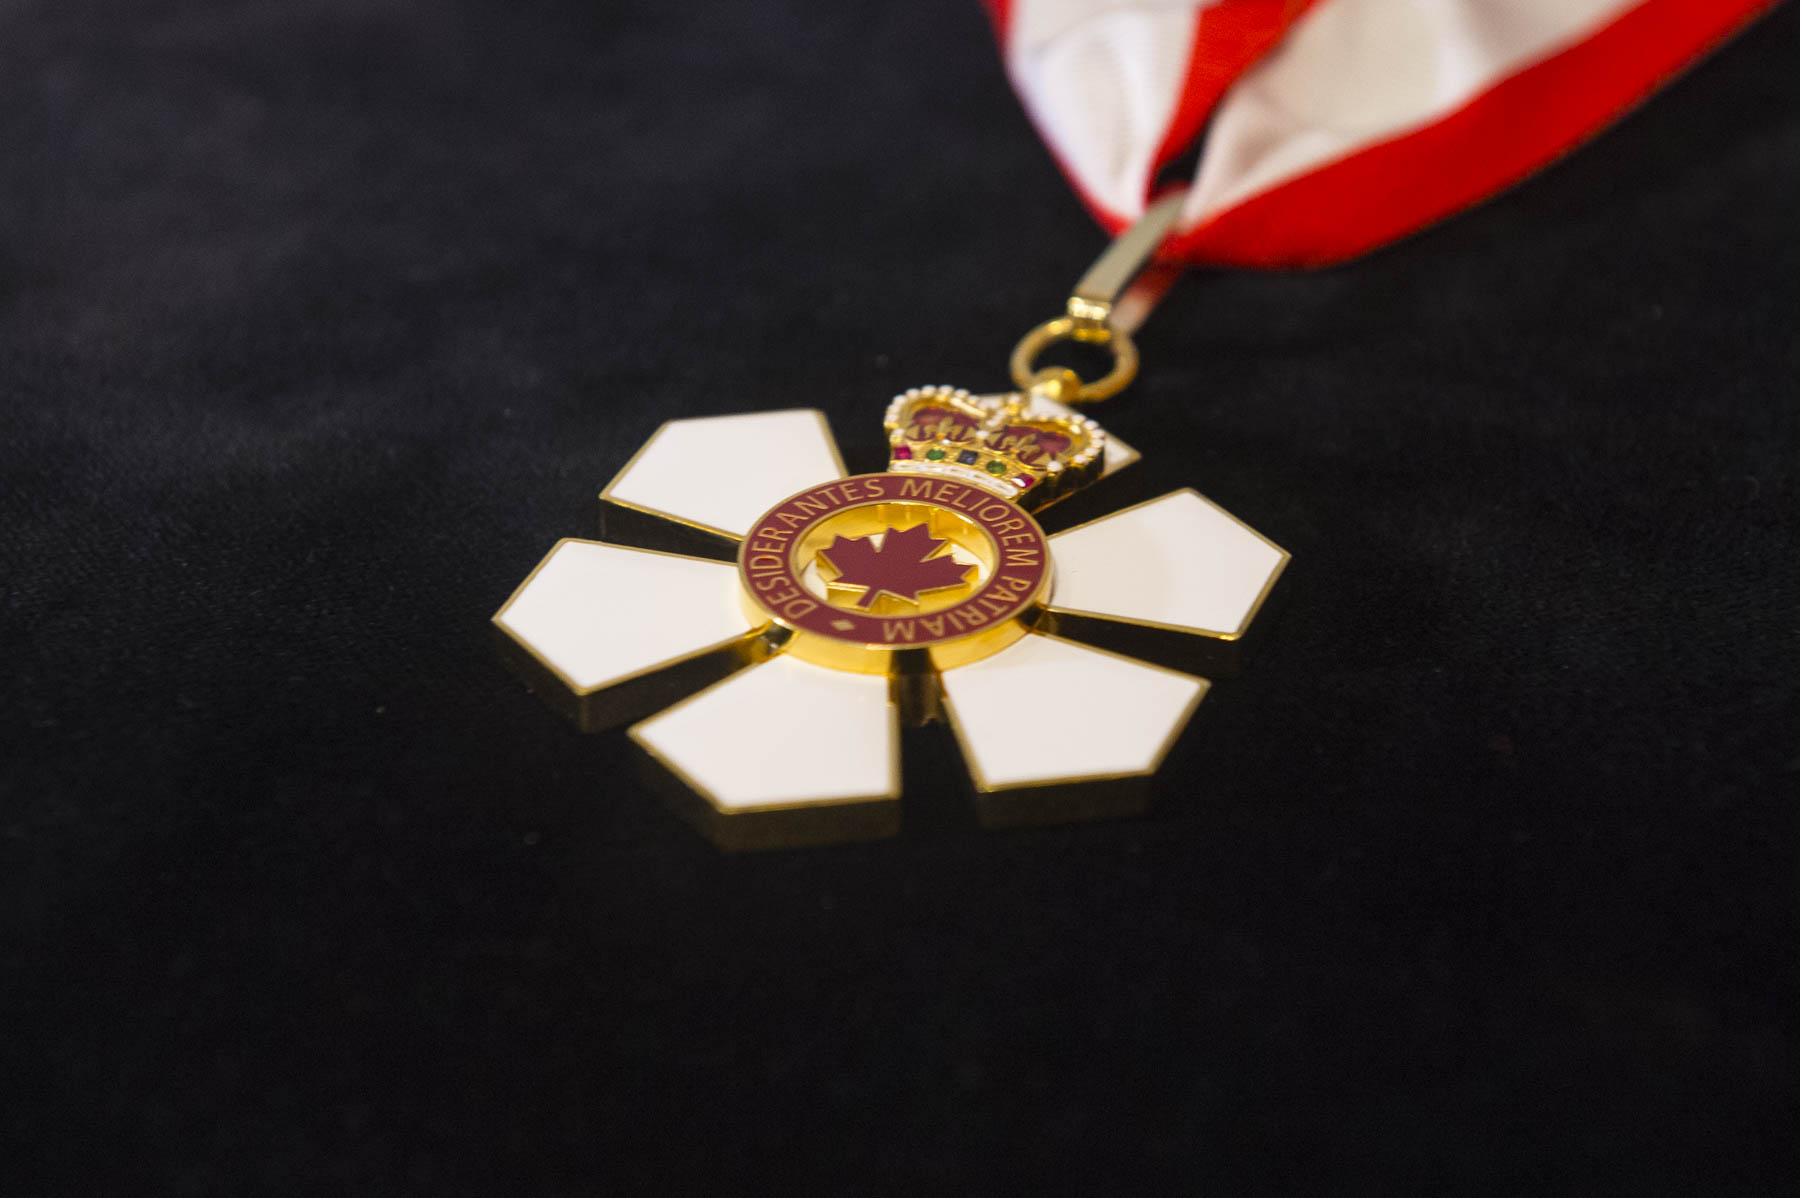 Created in 1967, on the occasion of Canada's centennial year, the Order of Canada, one of our country's highest civilian honours, recognizes outstanding achievement, dedication to the community and service to the nation.